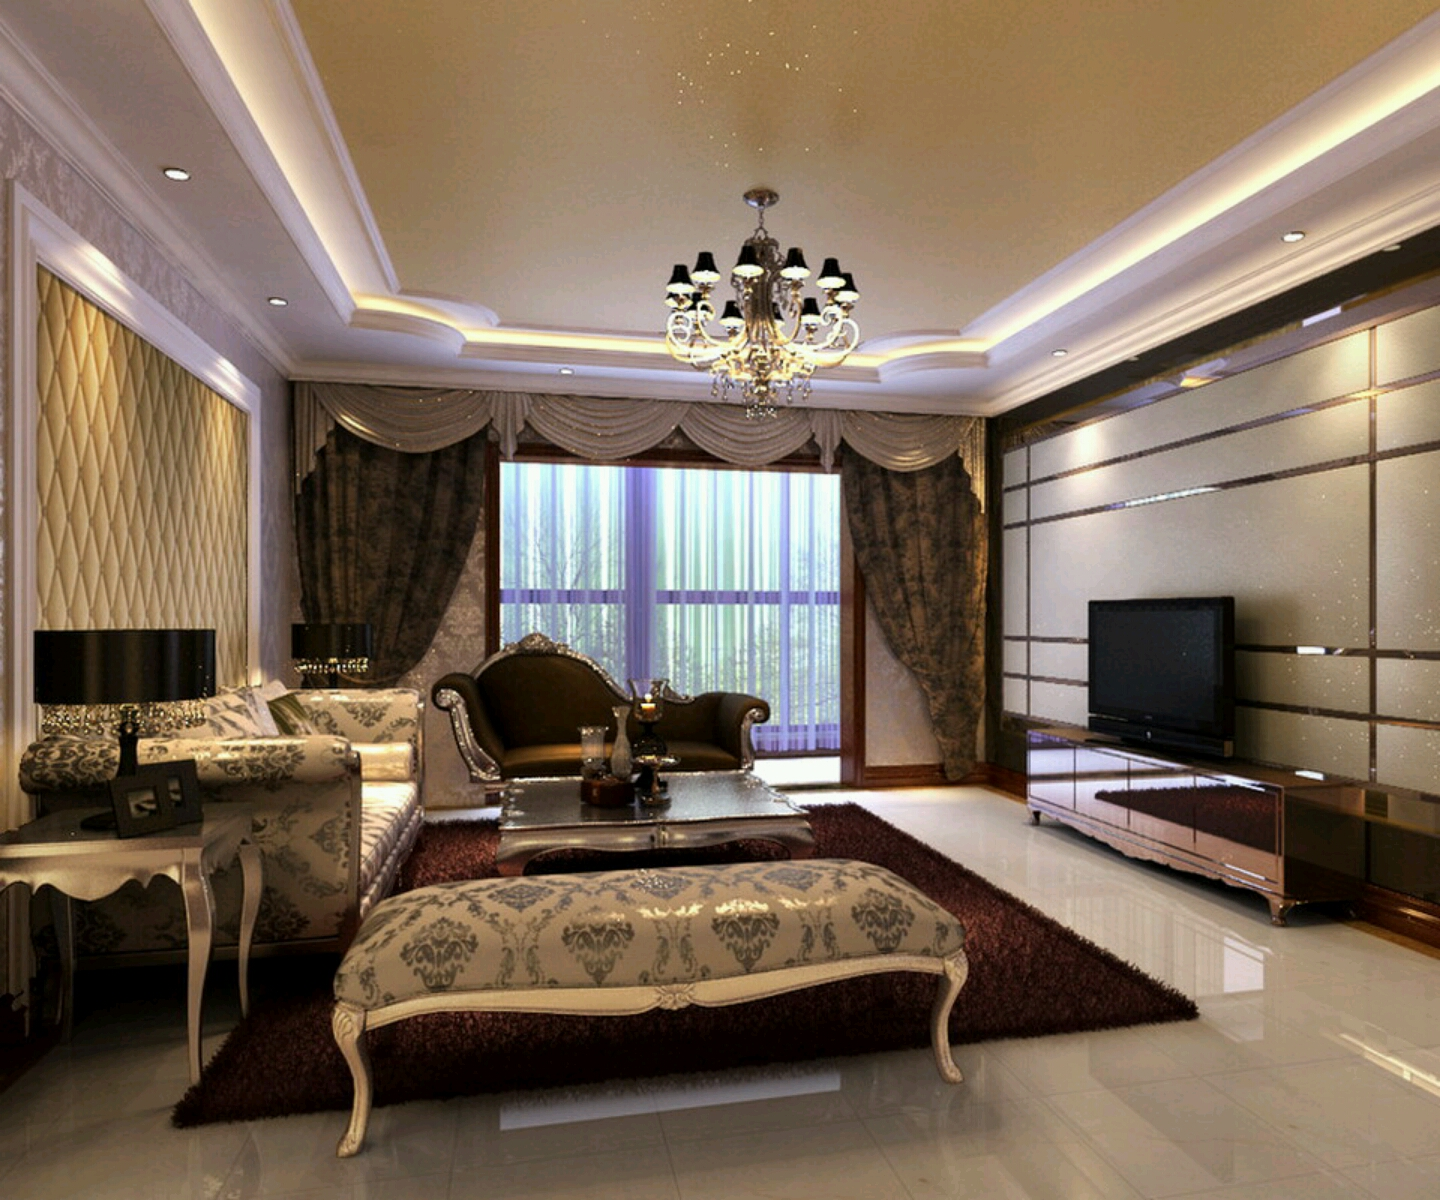 New home designs latest luxury homes interior decoration for Living rooms interior designs